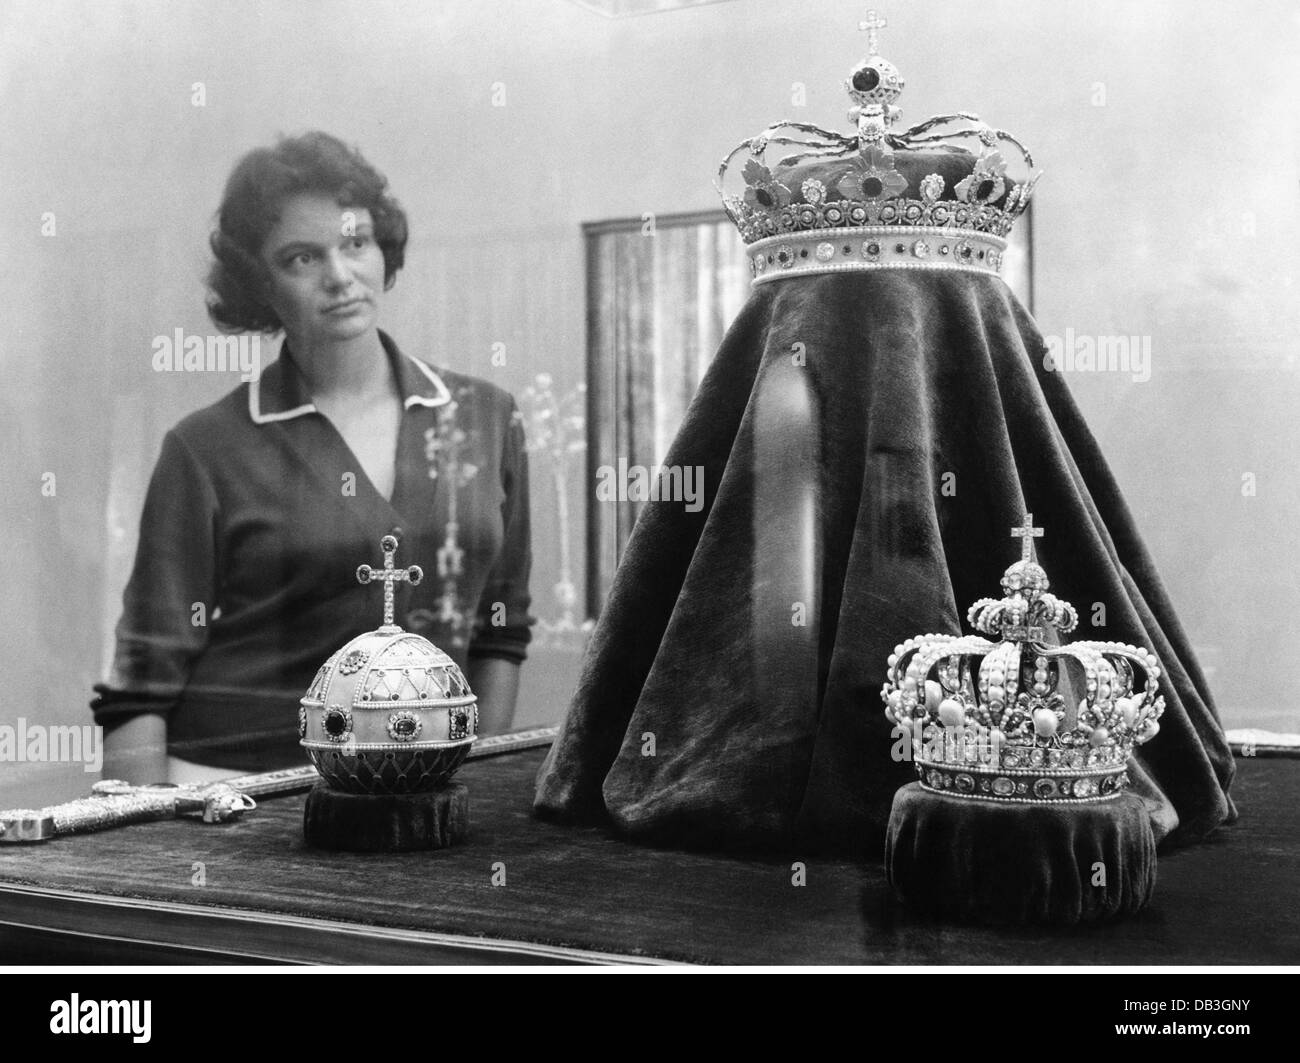 crowns / crown jewels, Bavaria, Imperial regalia of the House of Wittelsbach, manufactured for Maximilian I Joseph - Stock Image